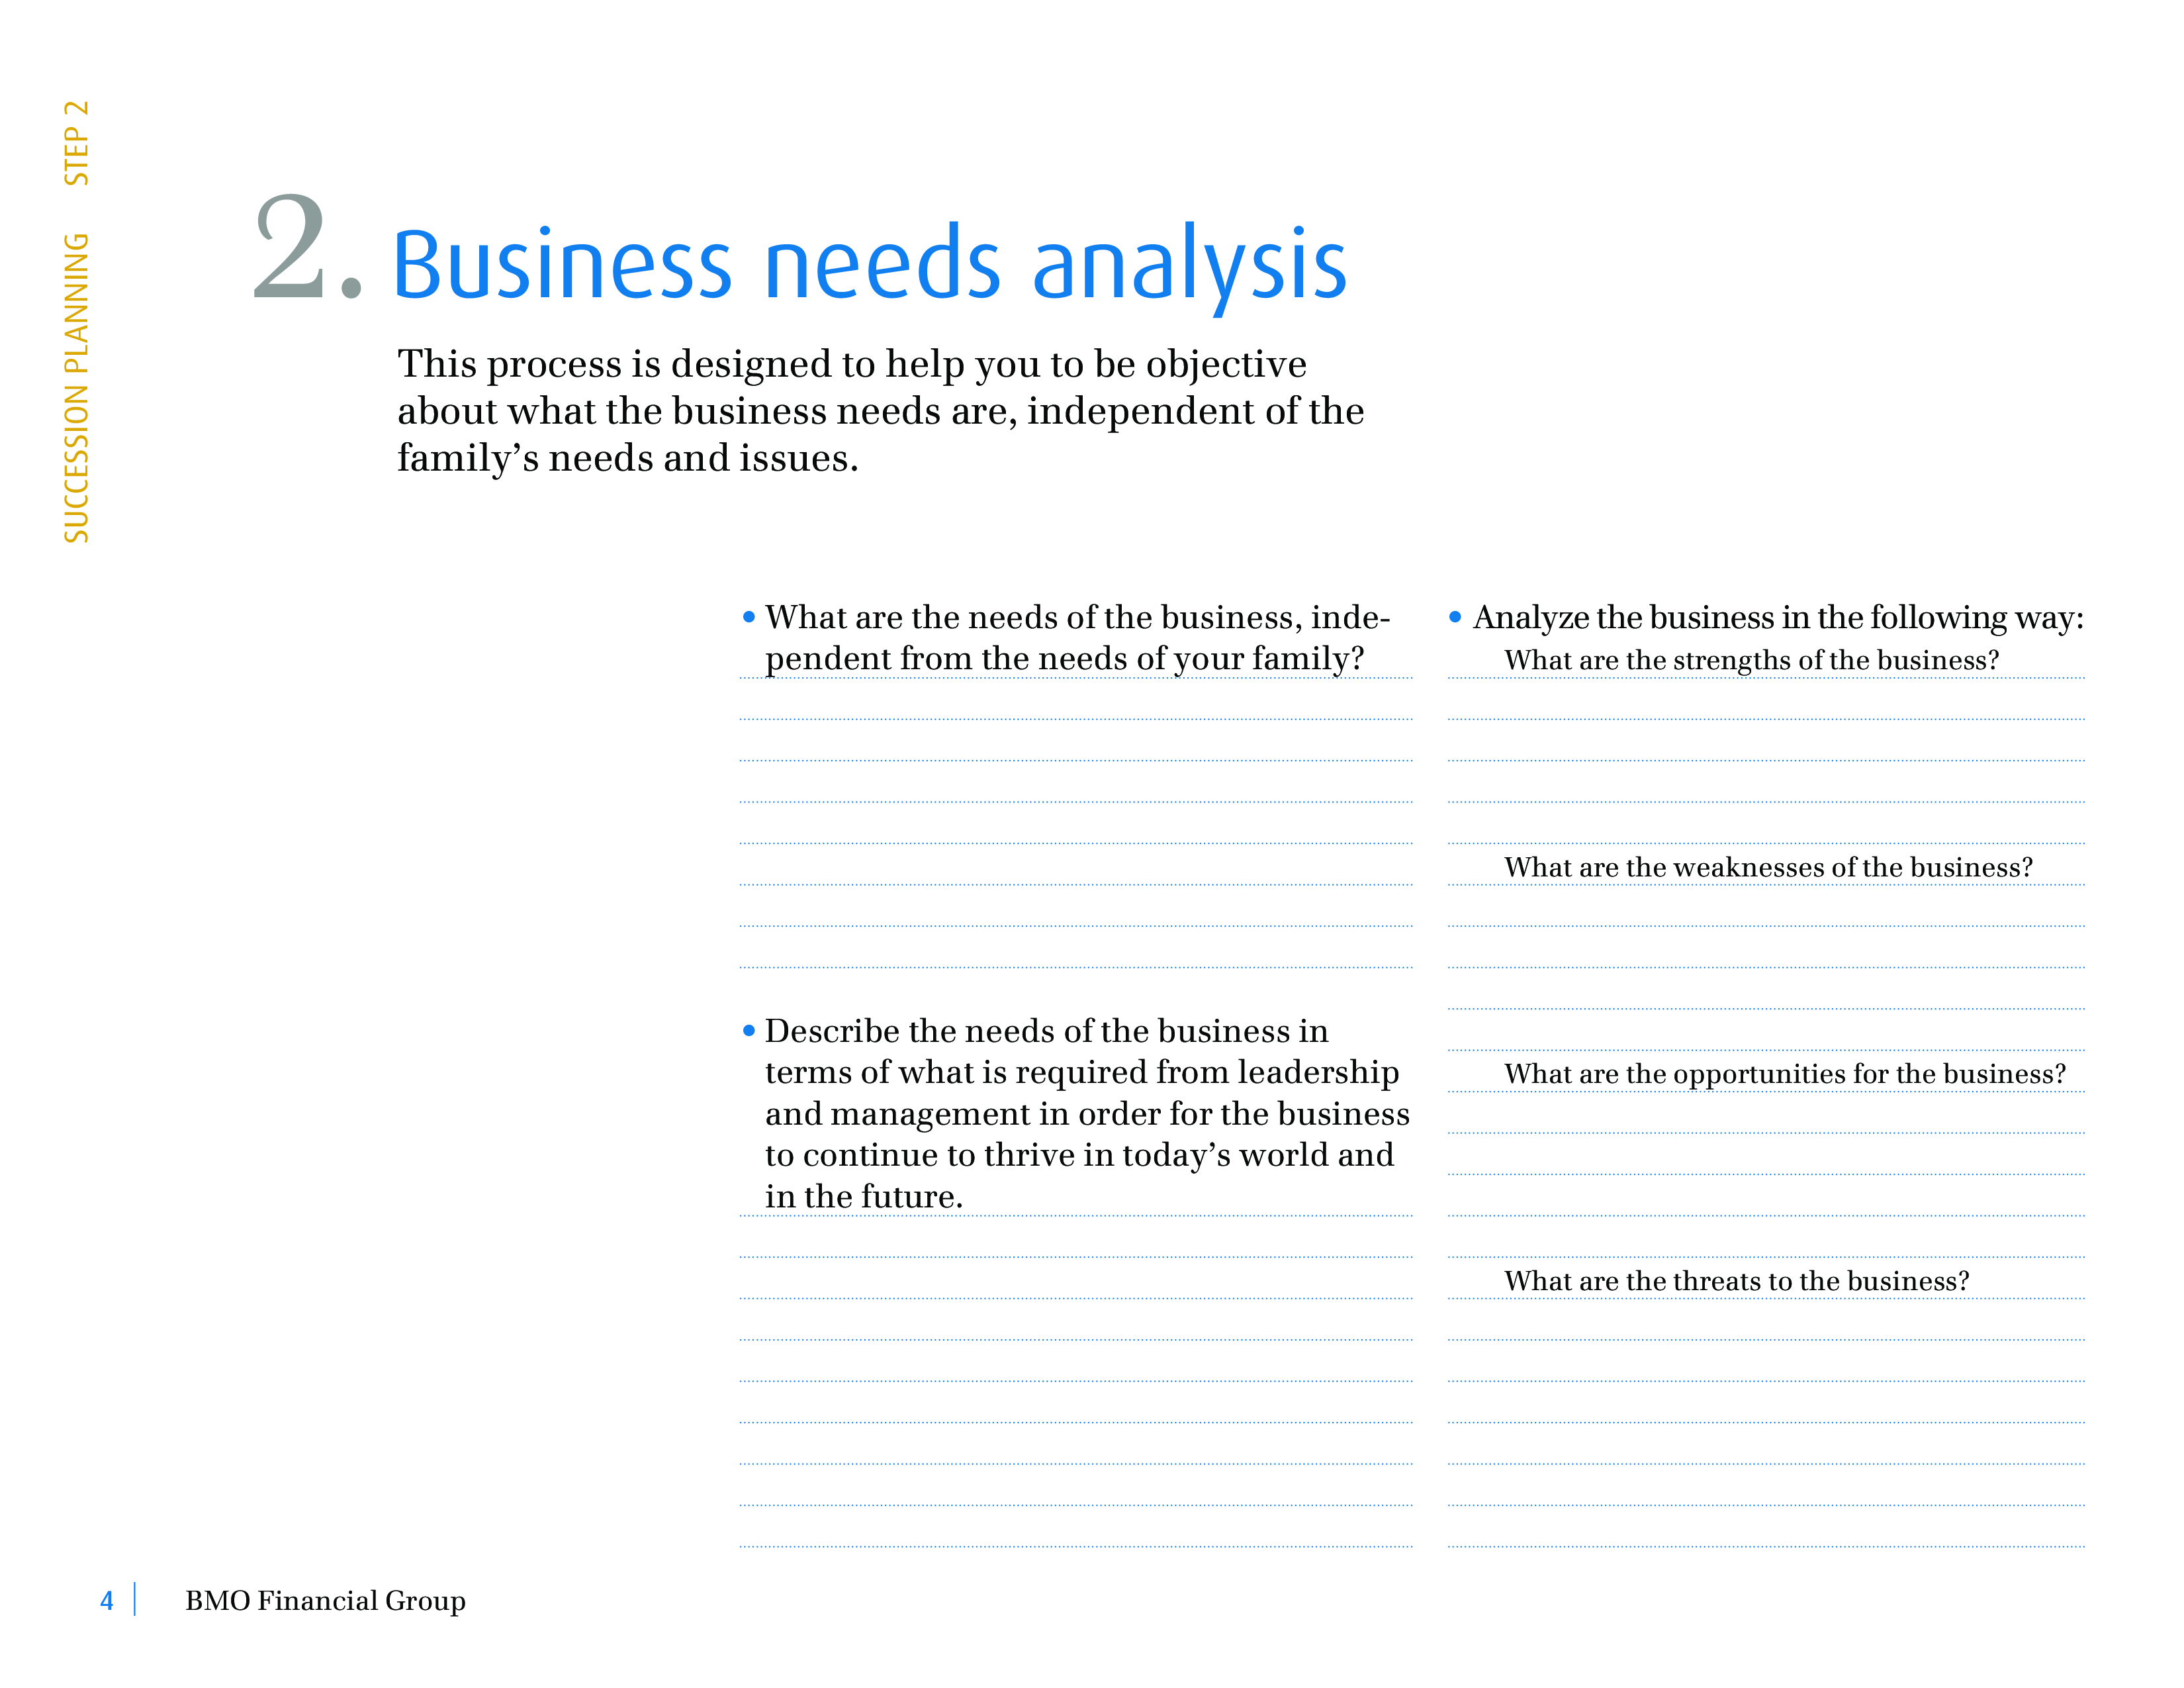 Free business needs analysis templates at allbusinesstemplates business needs analysis main image download template fbccfo